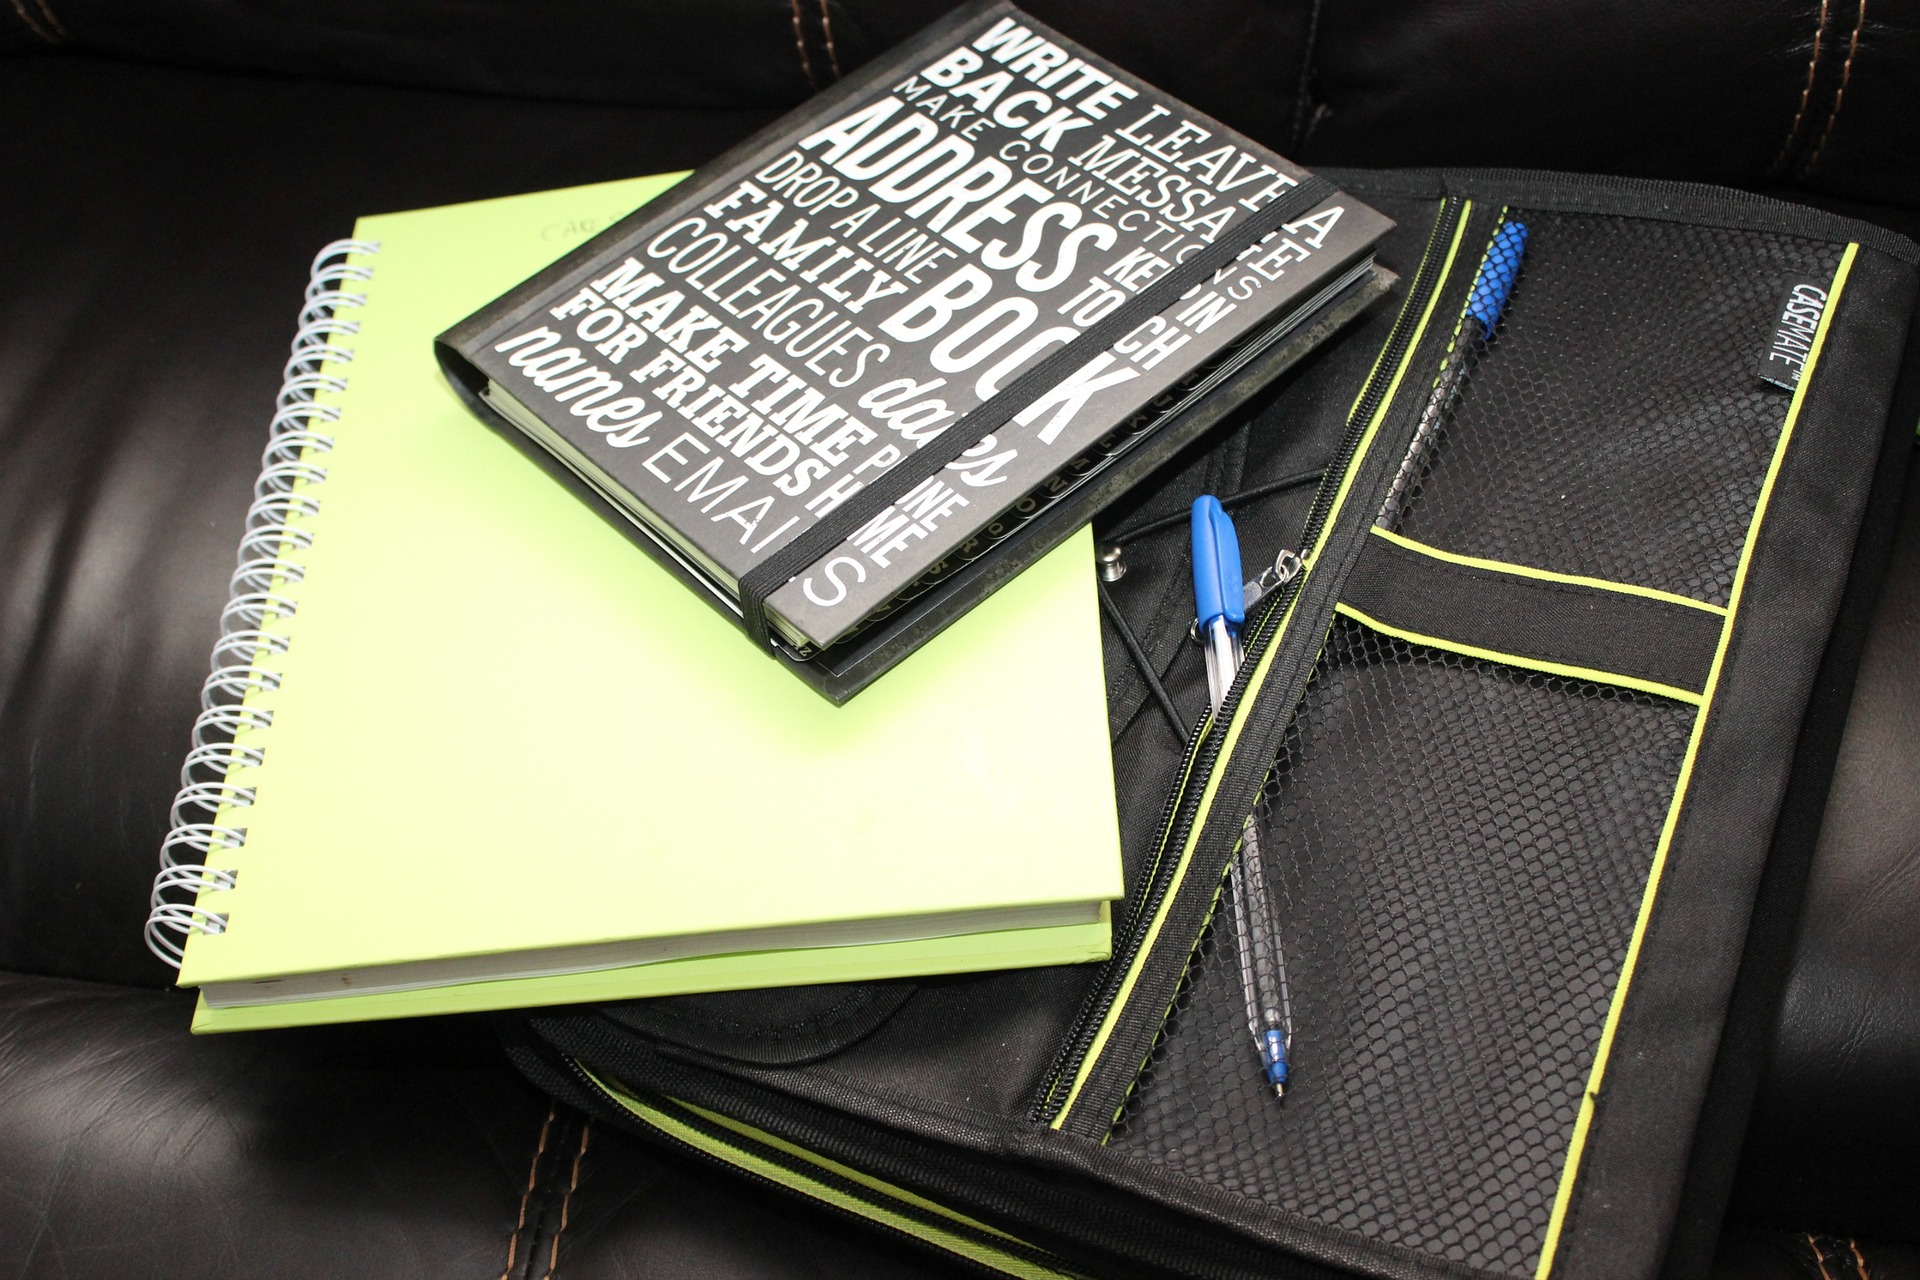 An address book, notebook, and cloth binder